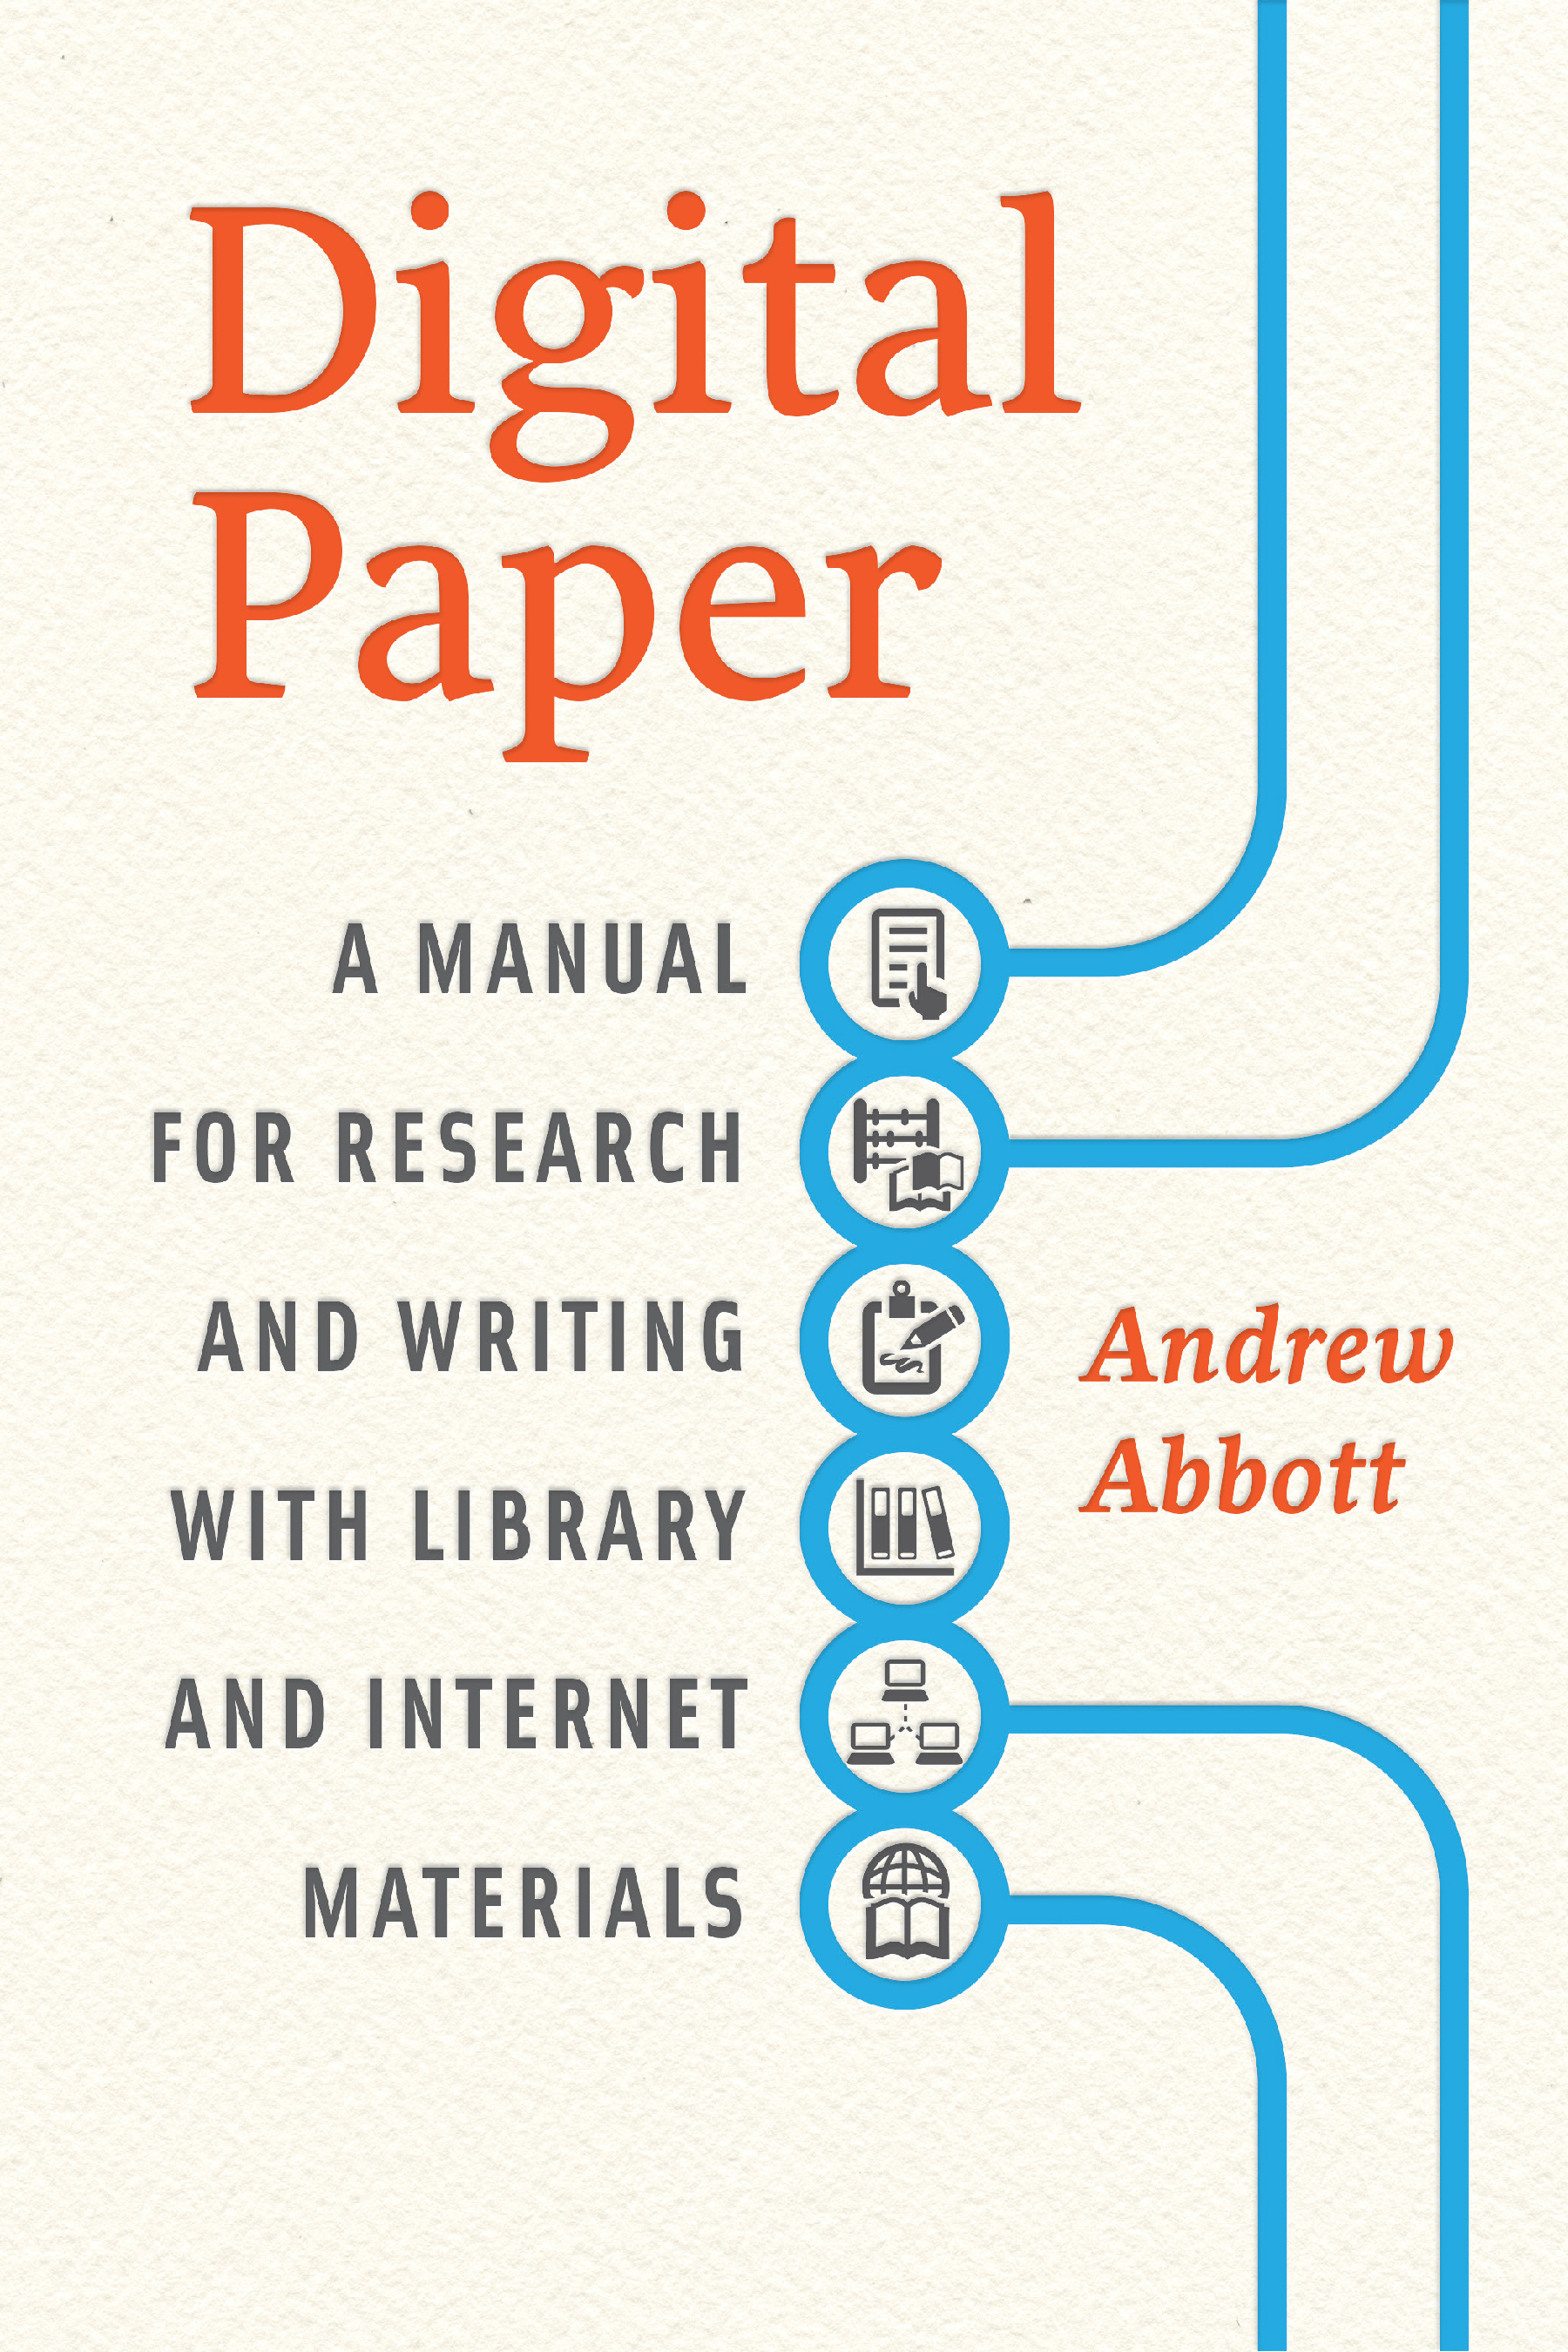 digital paper a manual for research and writing library and  addthis sharing buttons